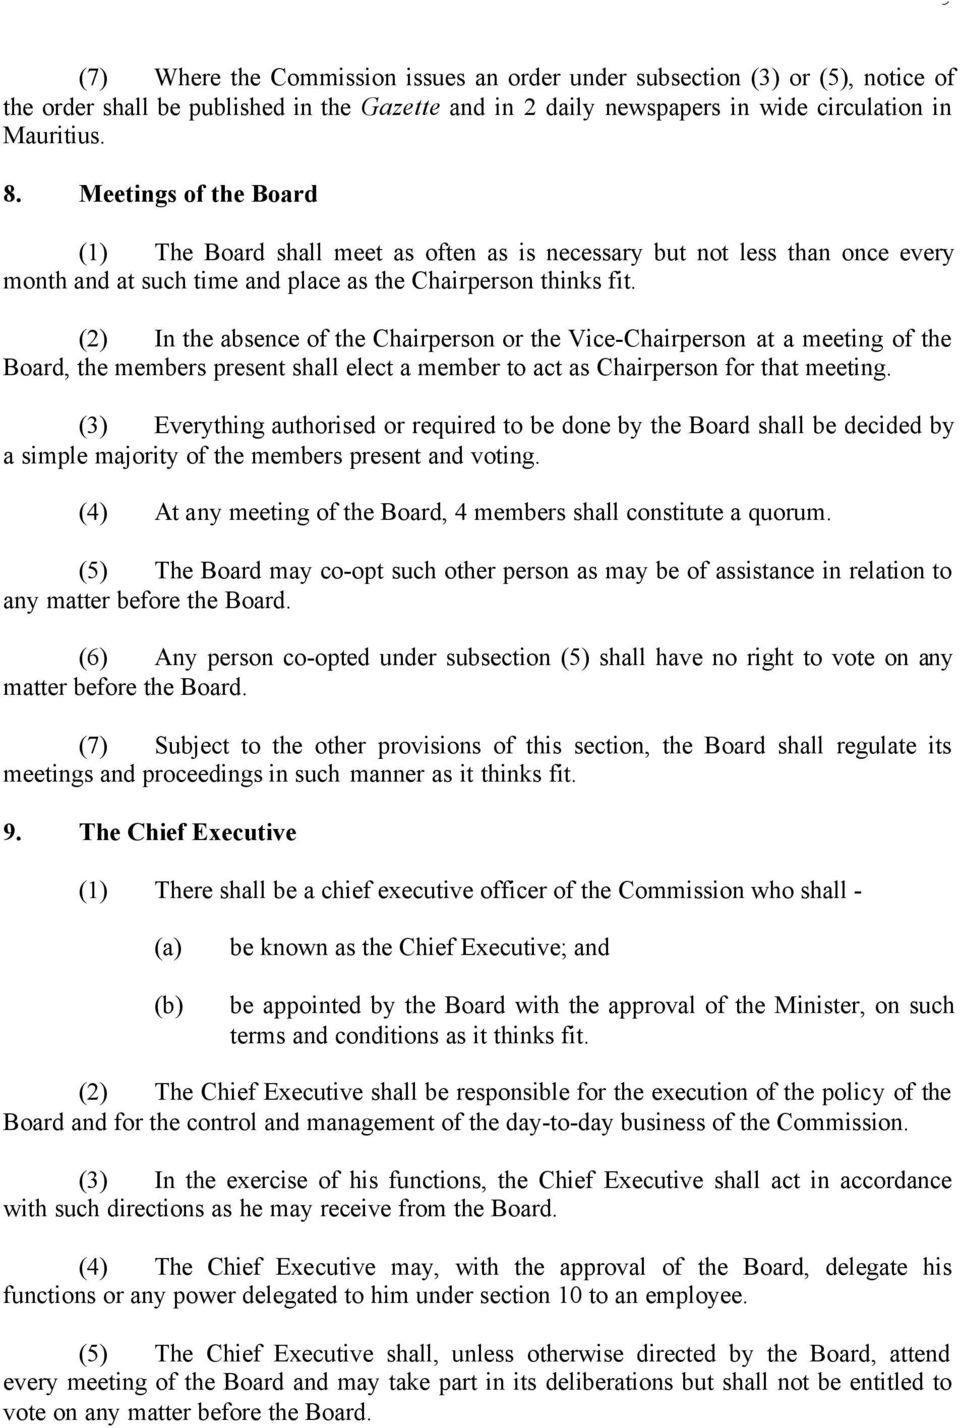 (2) In the absence of the Chairperson or the Vice-Chairperson at a meeting of the Board, the members present shall elect a member to act as Chairperson for that meeting.